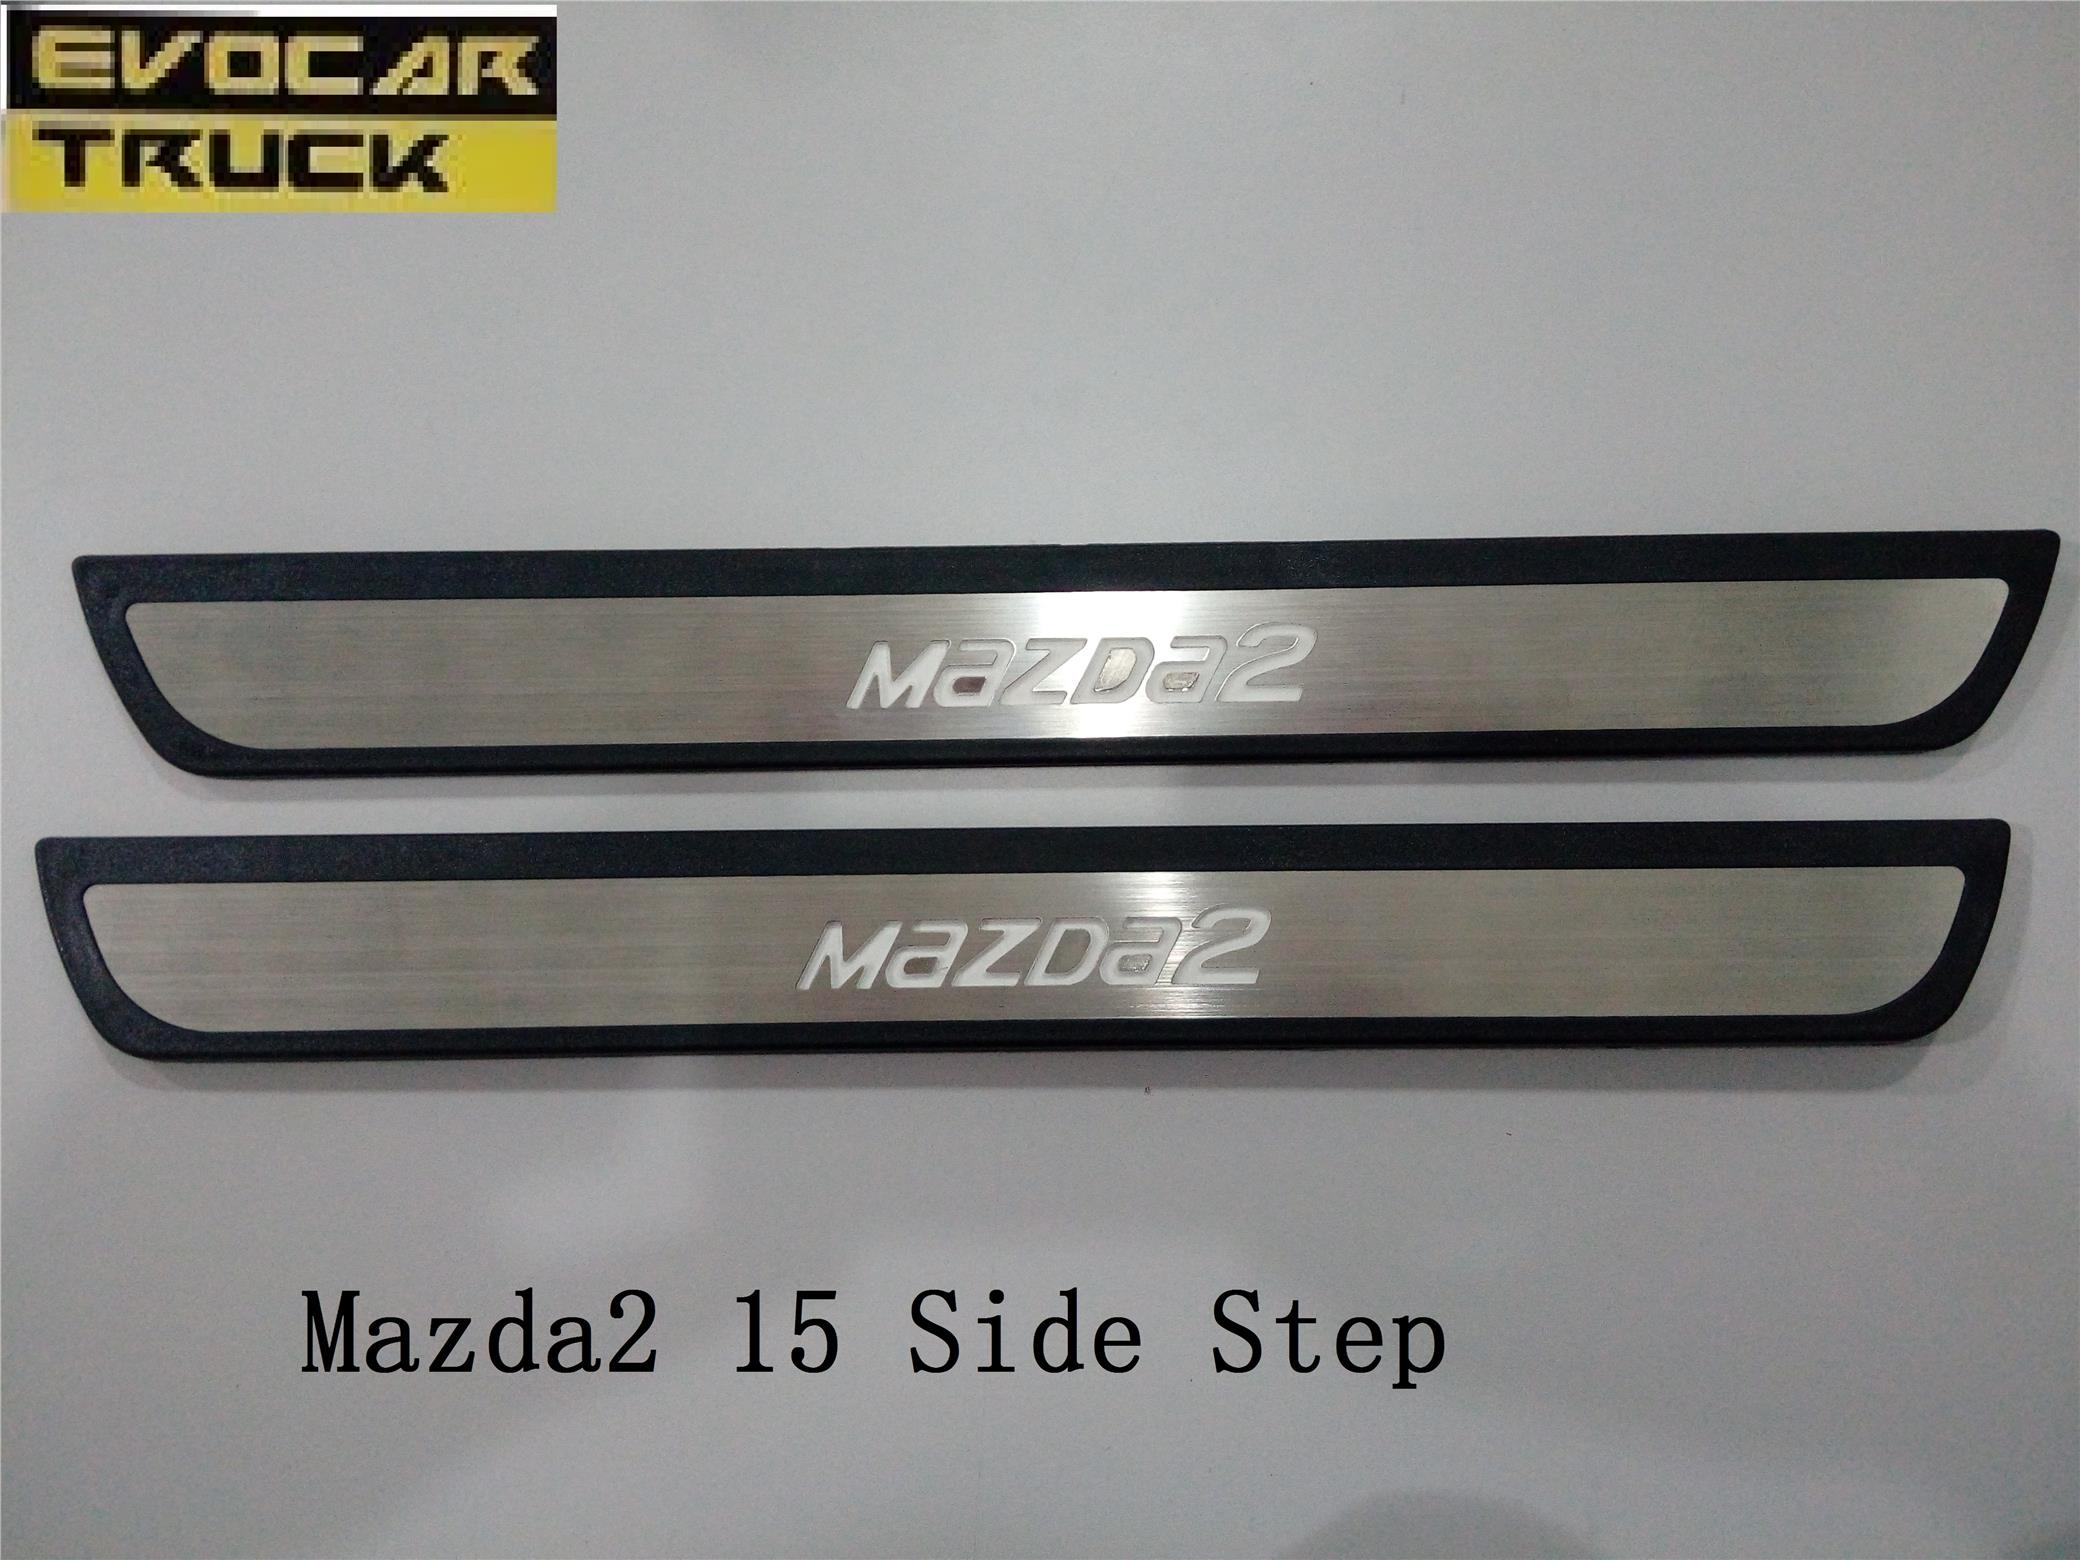 MAZDA 2 LED DOOR SIDE STEP